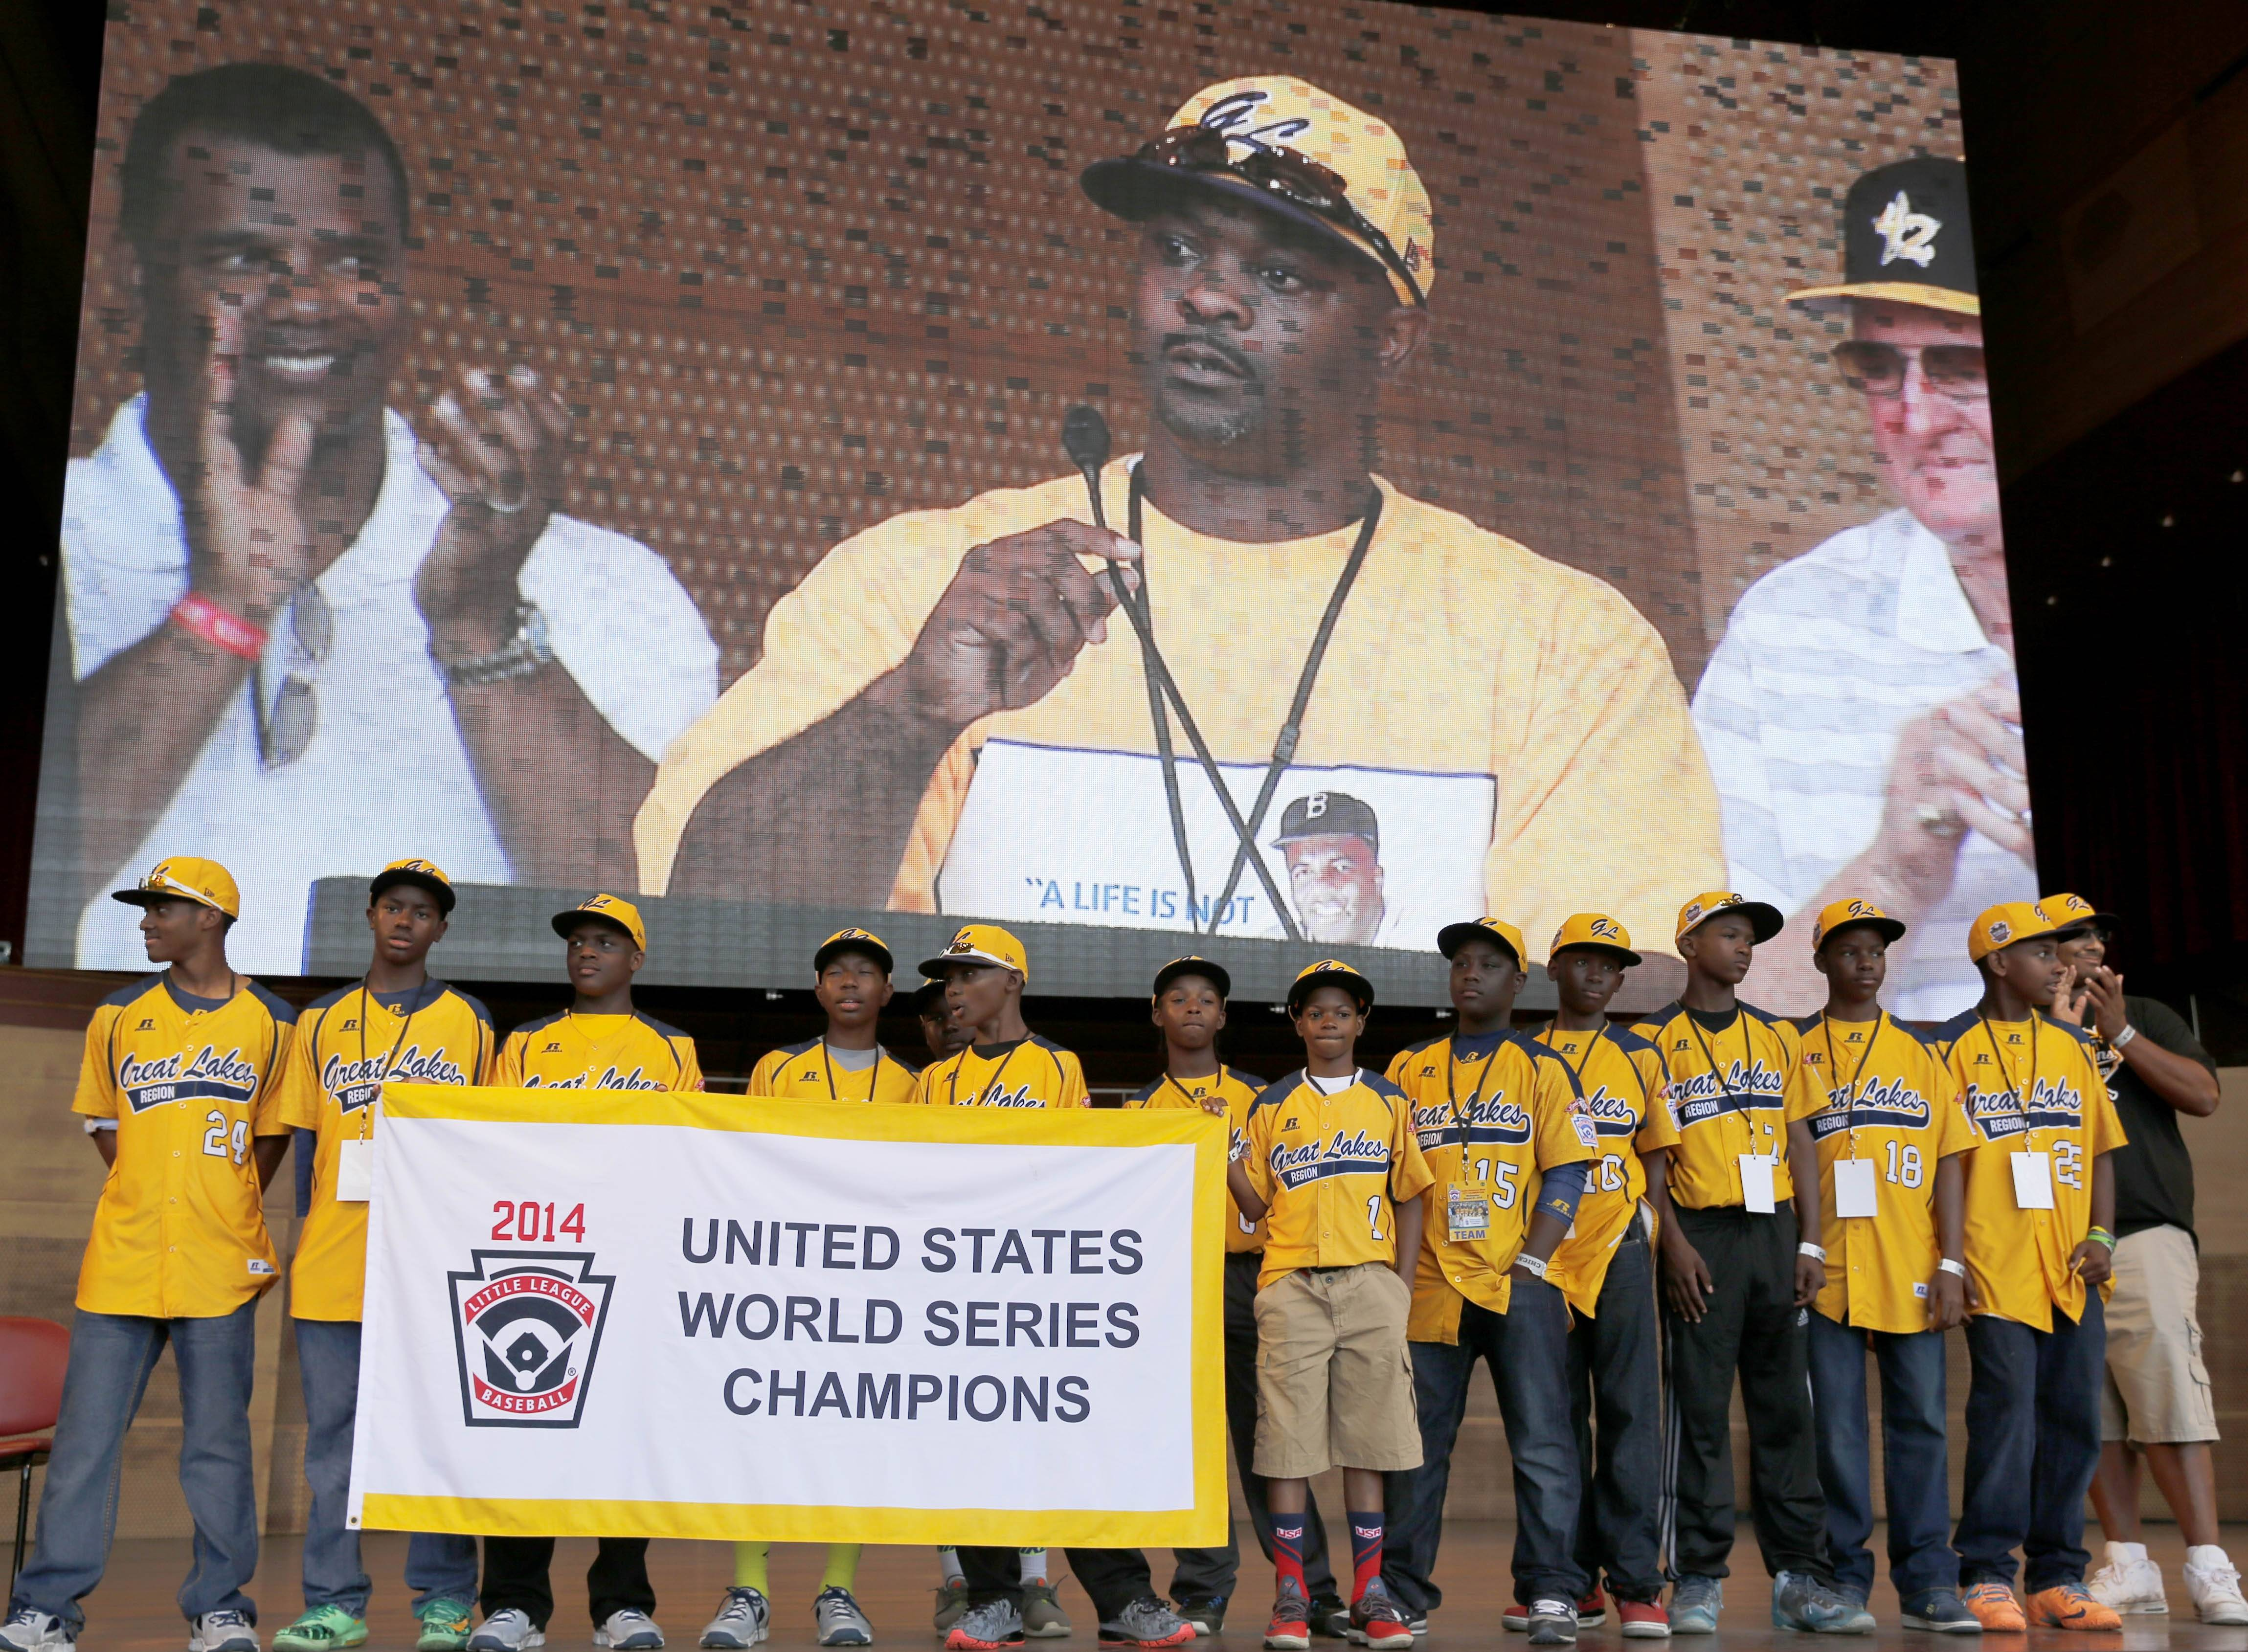 Members of the Jackie Robinson West All Stars Little League Baseball team participate in a rally and listen to manager Darold Butler on the big screen as they celebrate the team's U.S. Little League Championship Wednesday at Chicago's Millennium Park.